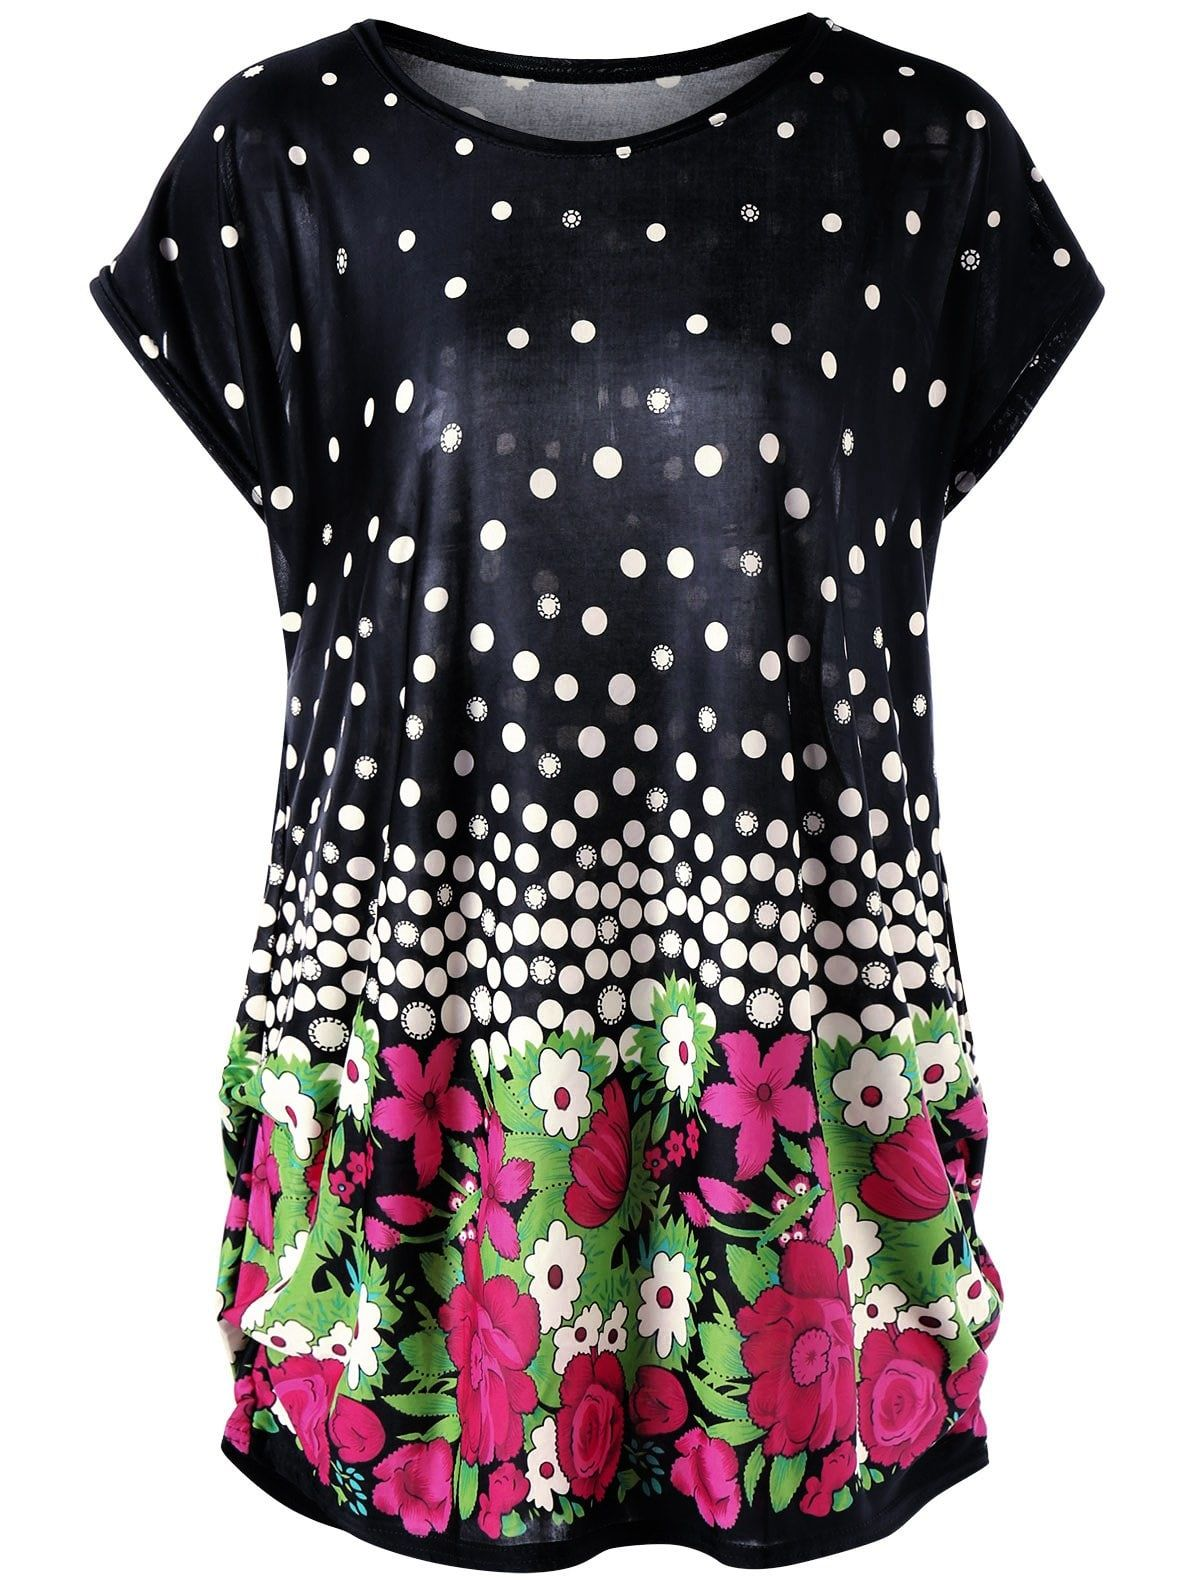 ddd2dcad69 Plus Size Floral and Polka Dot Baggy Top | Tops For Her | Baggy tops ...